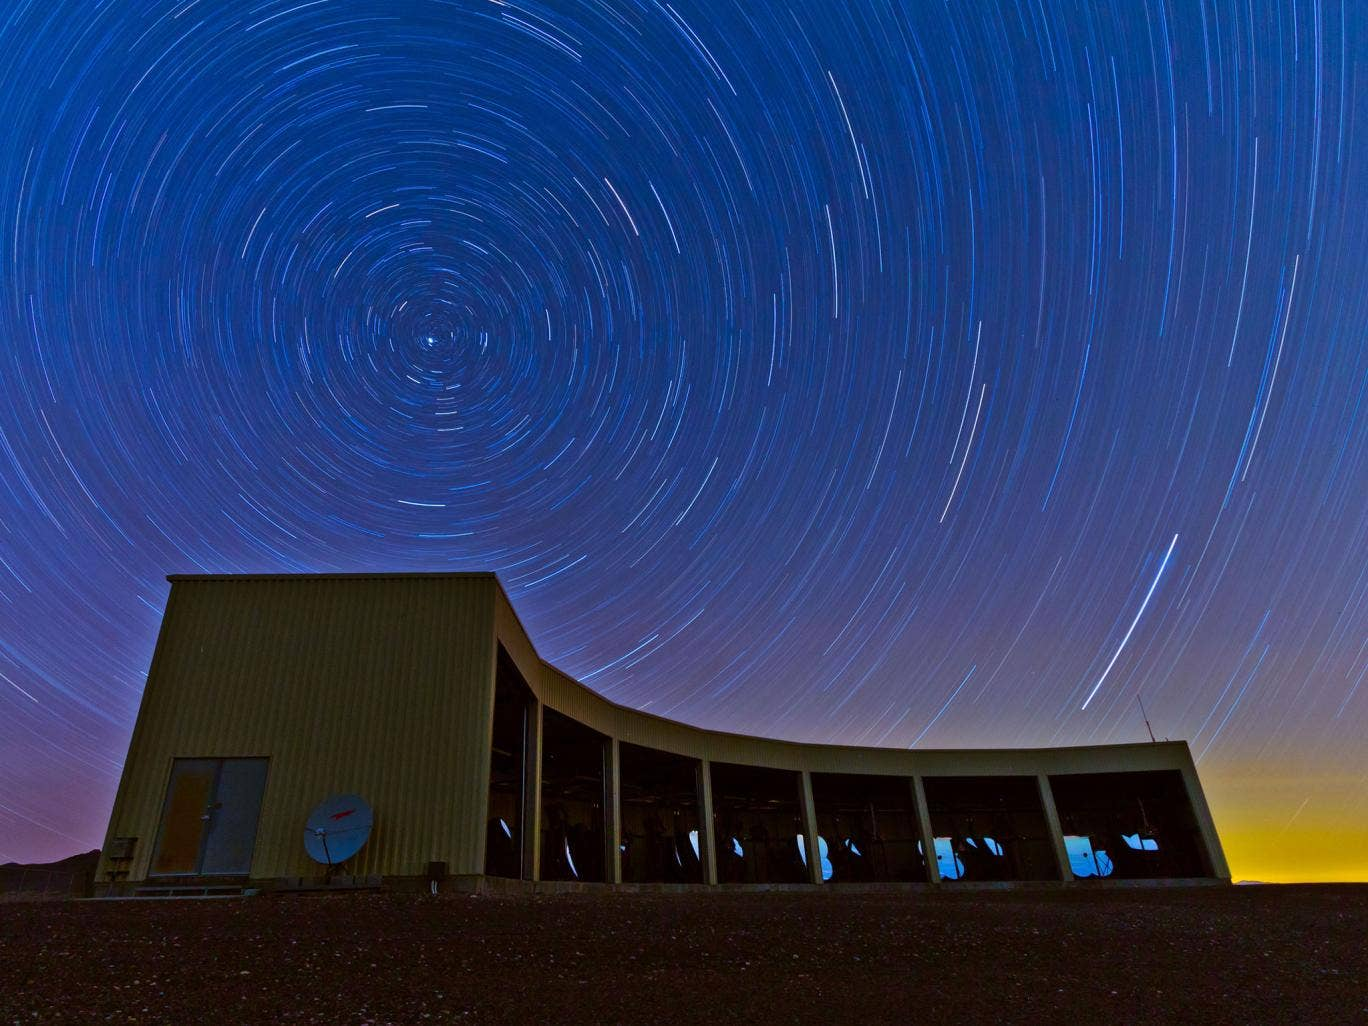 A time-lapse photo of the Middle Drum facility of the Telescope Array, a $25 million cosmic ray observatory that sprawls across the desert west of Delta, Utah.